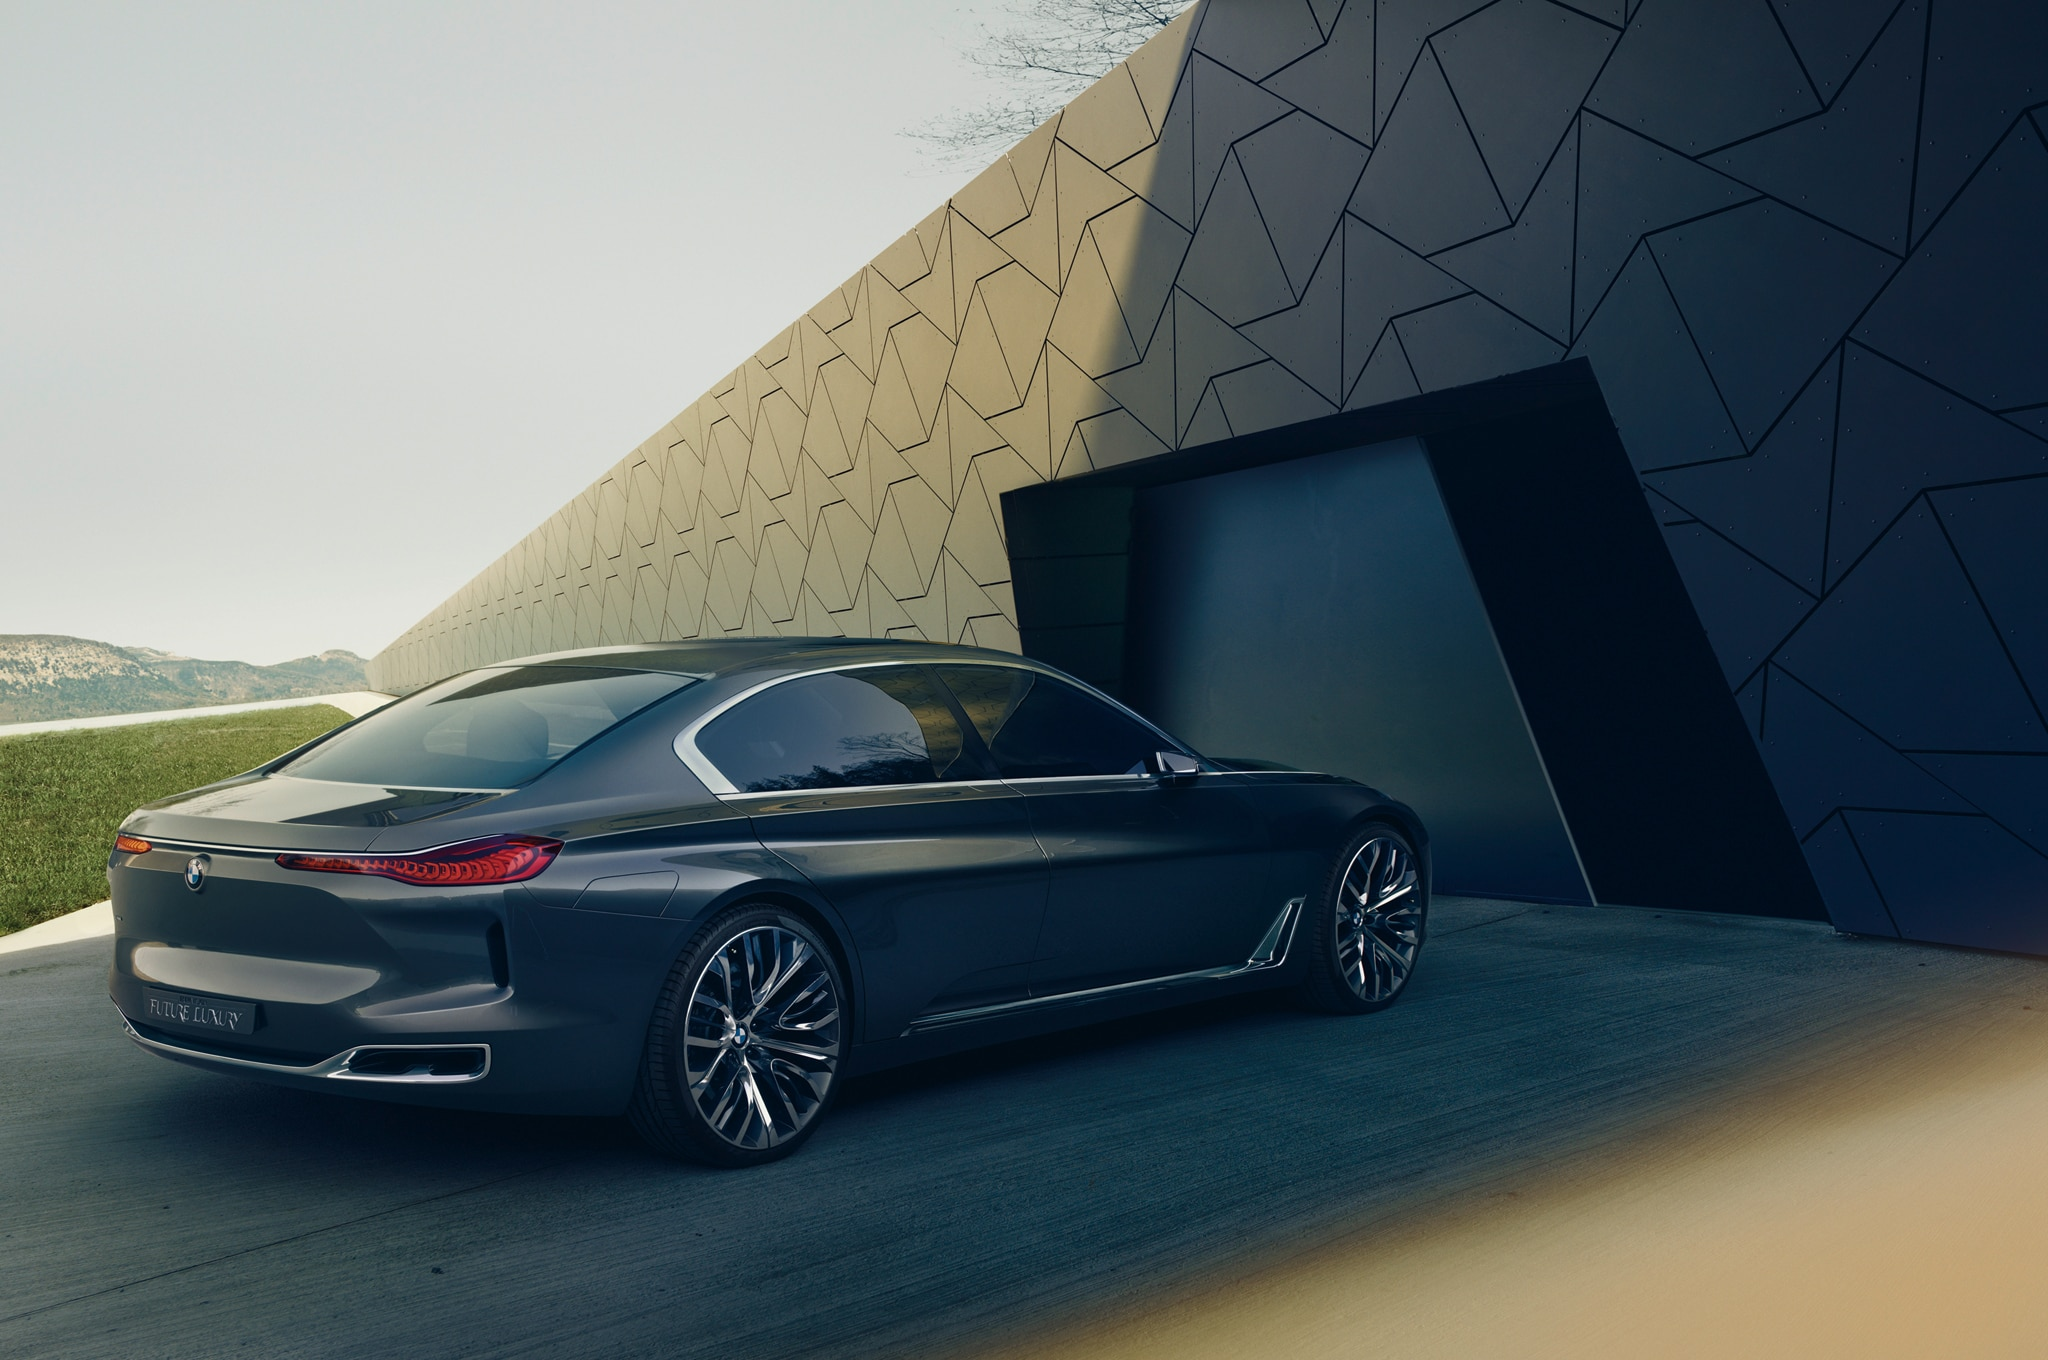 bmw planning 9 series four door coupe i6 electric sedan. Black Bedroom Furniture Sets. Home Design Ideas